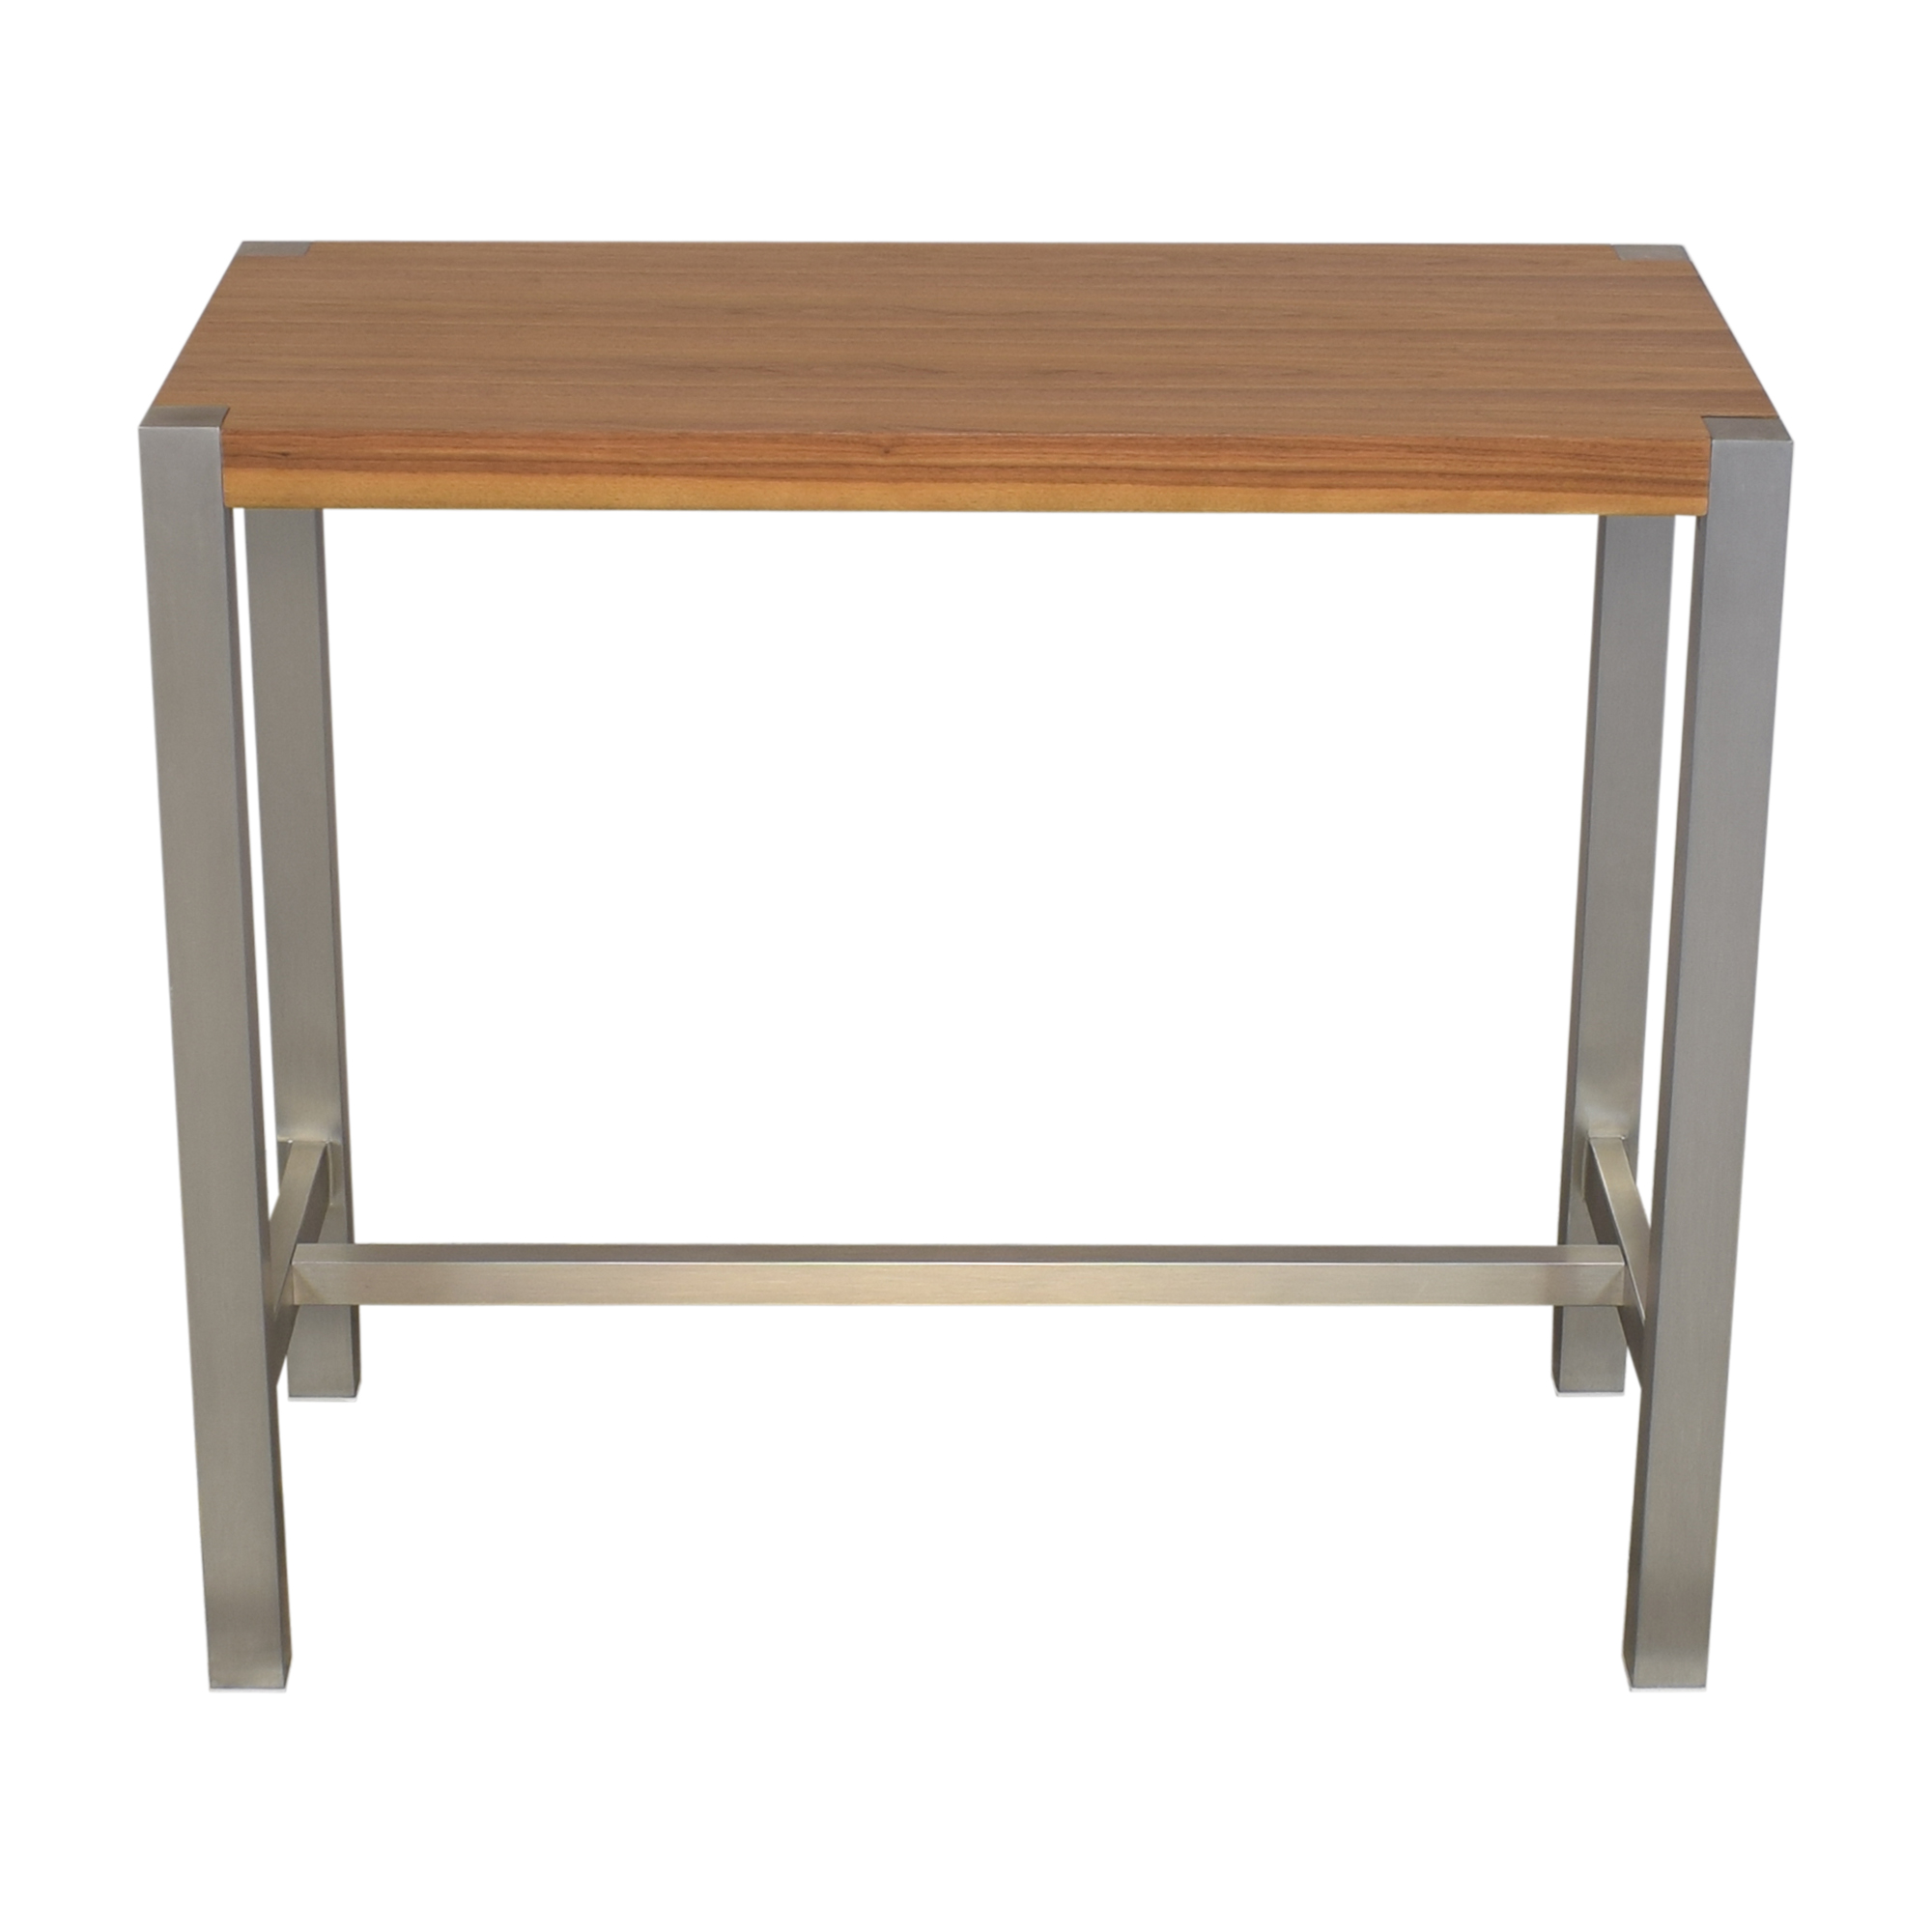 buy Moe's Home Collection Moe's Home Collection Riva Bar Table online